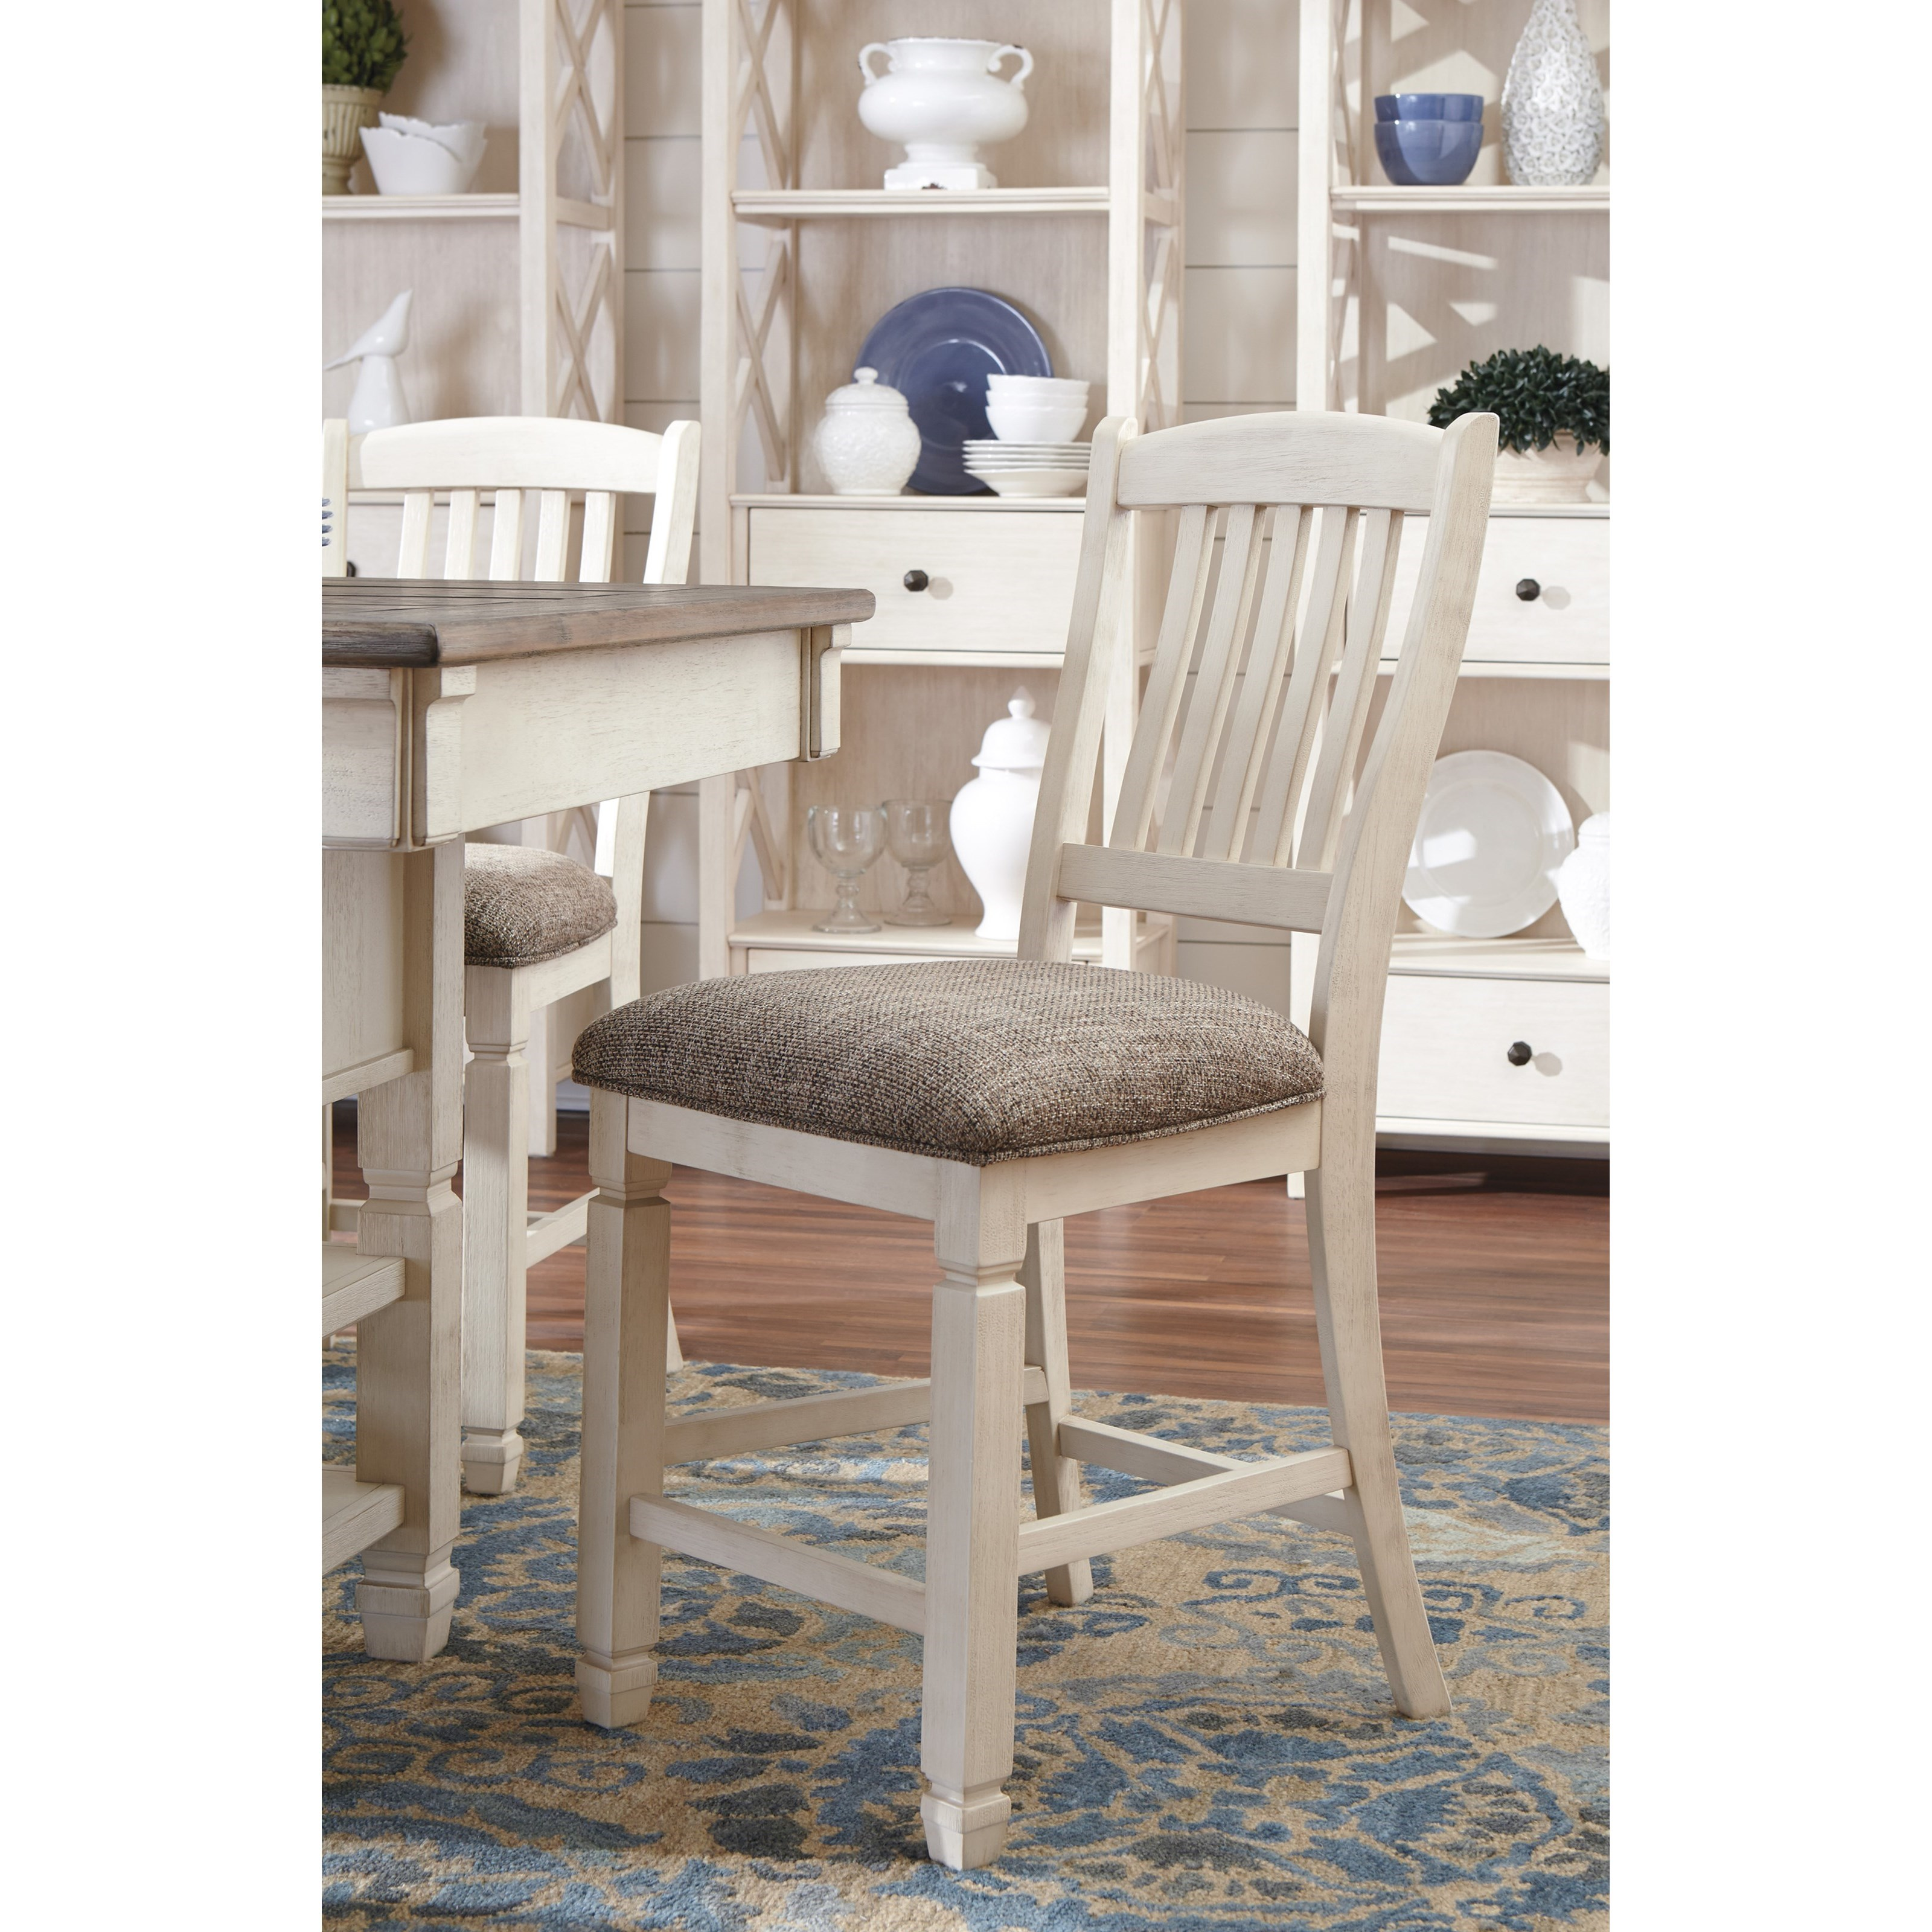 Bolanburg Relaxed Vintage Upholstered Counter Height Stool